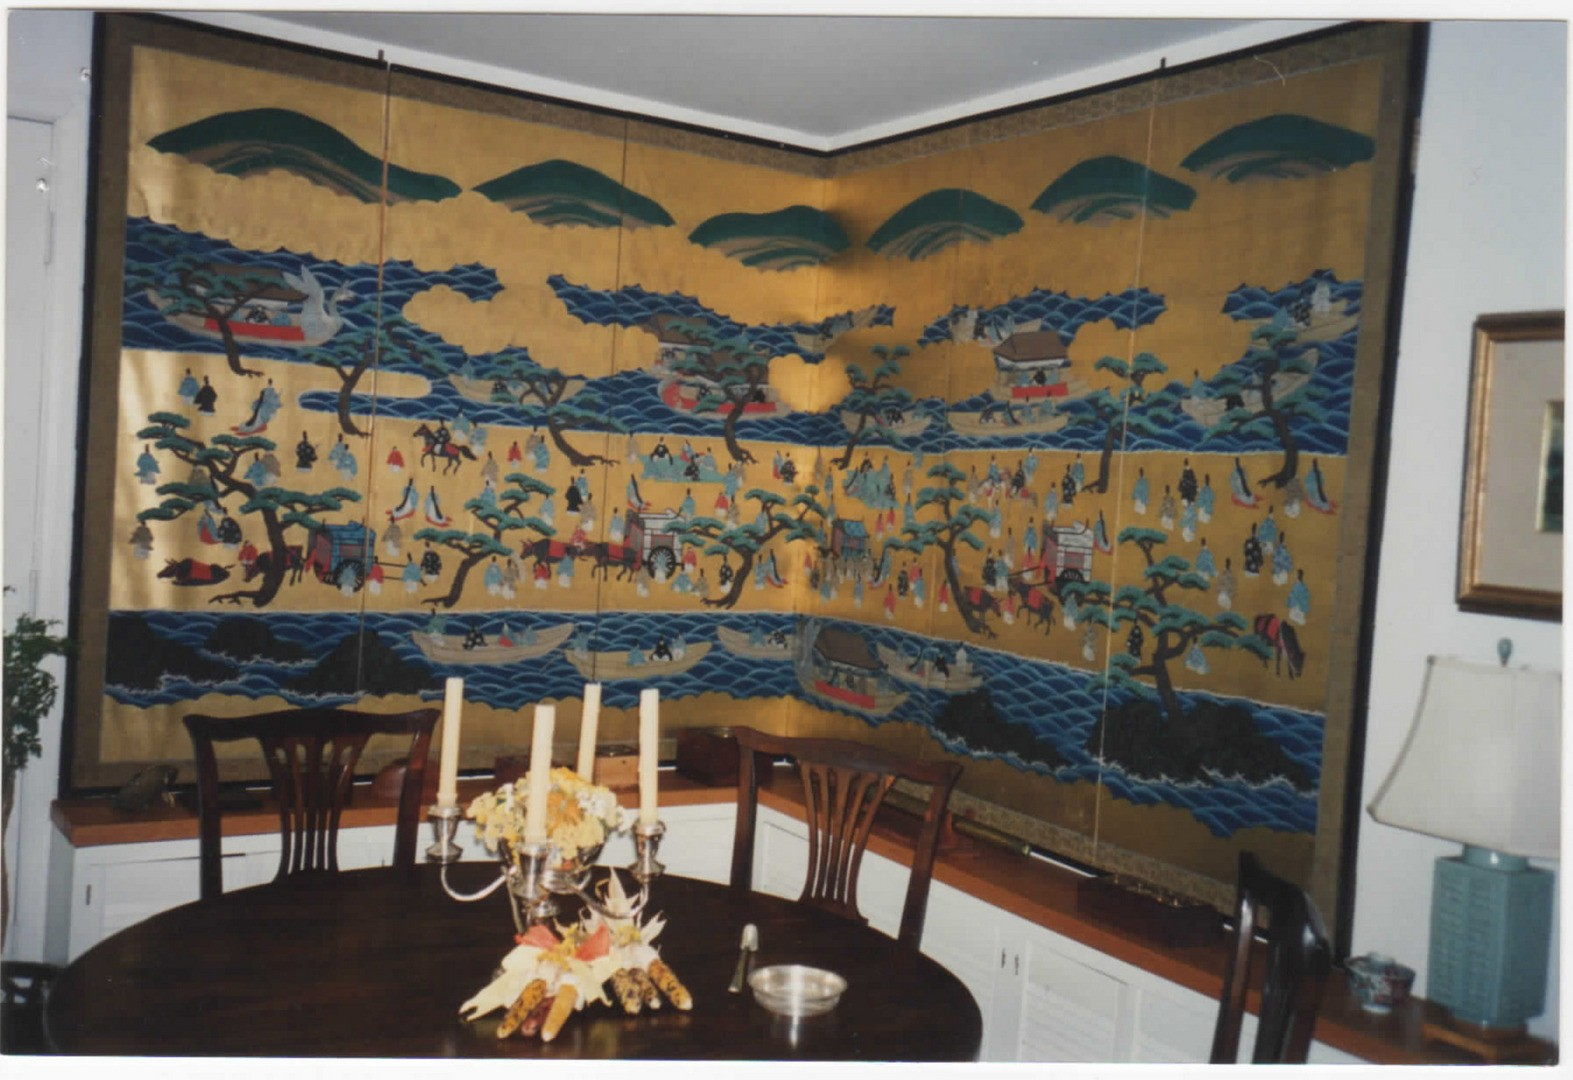 Lot 3832390: Japanese Gold Leaf Screen, Tosa School, early 19th c.